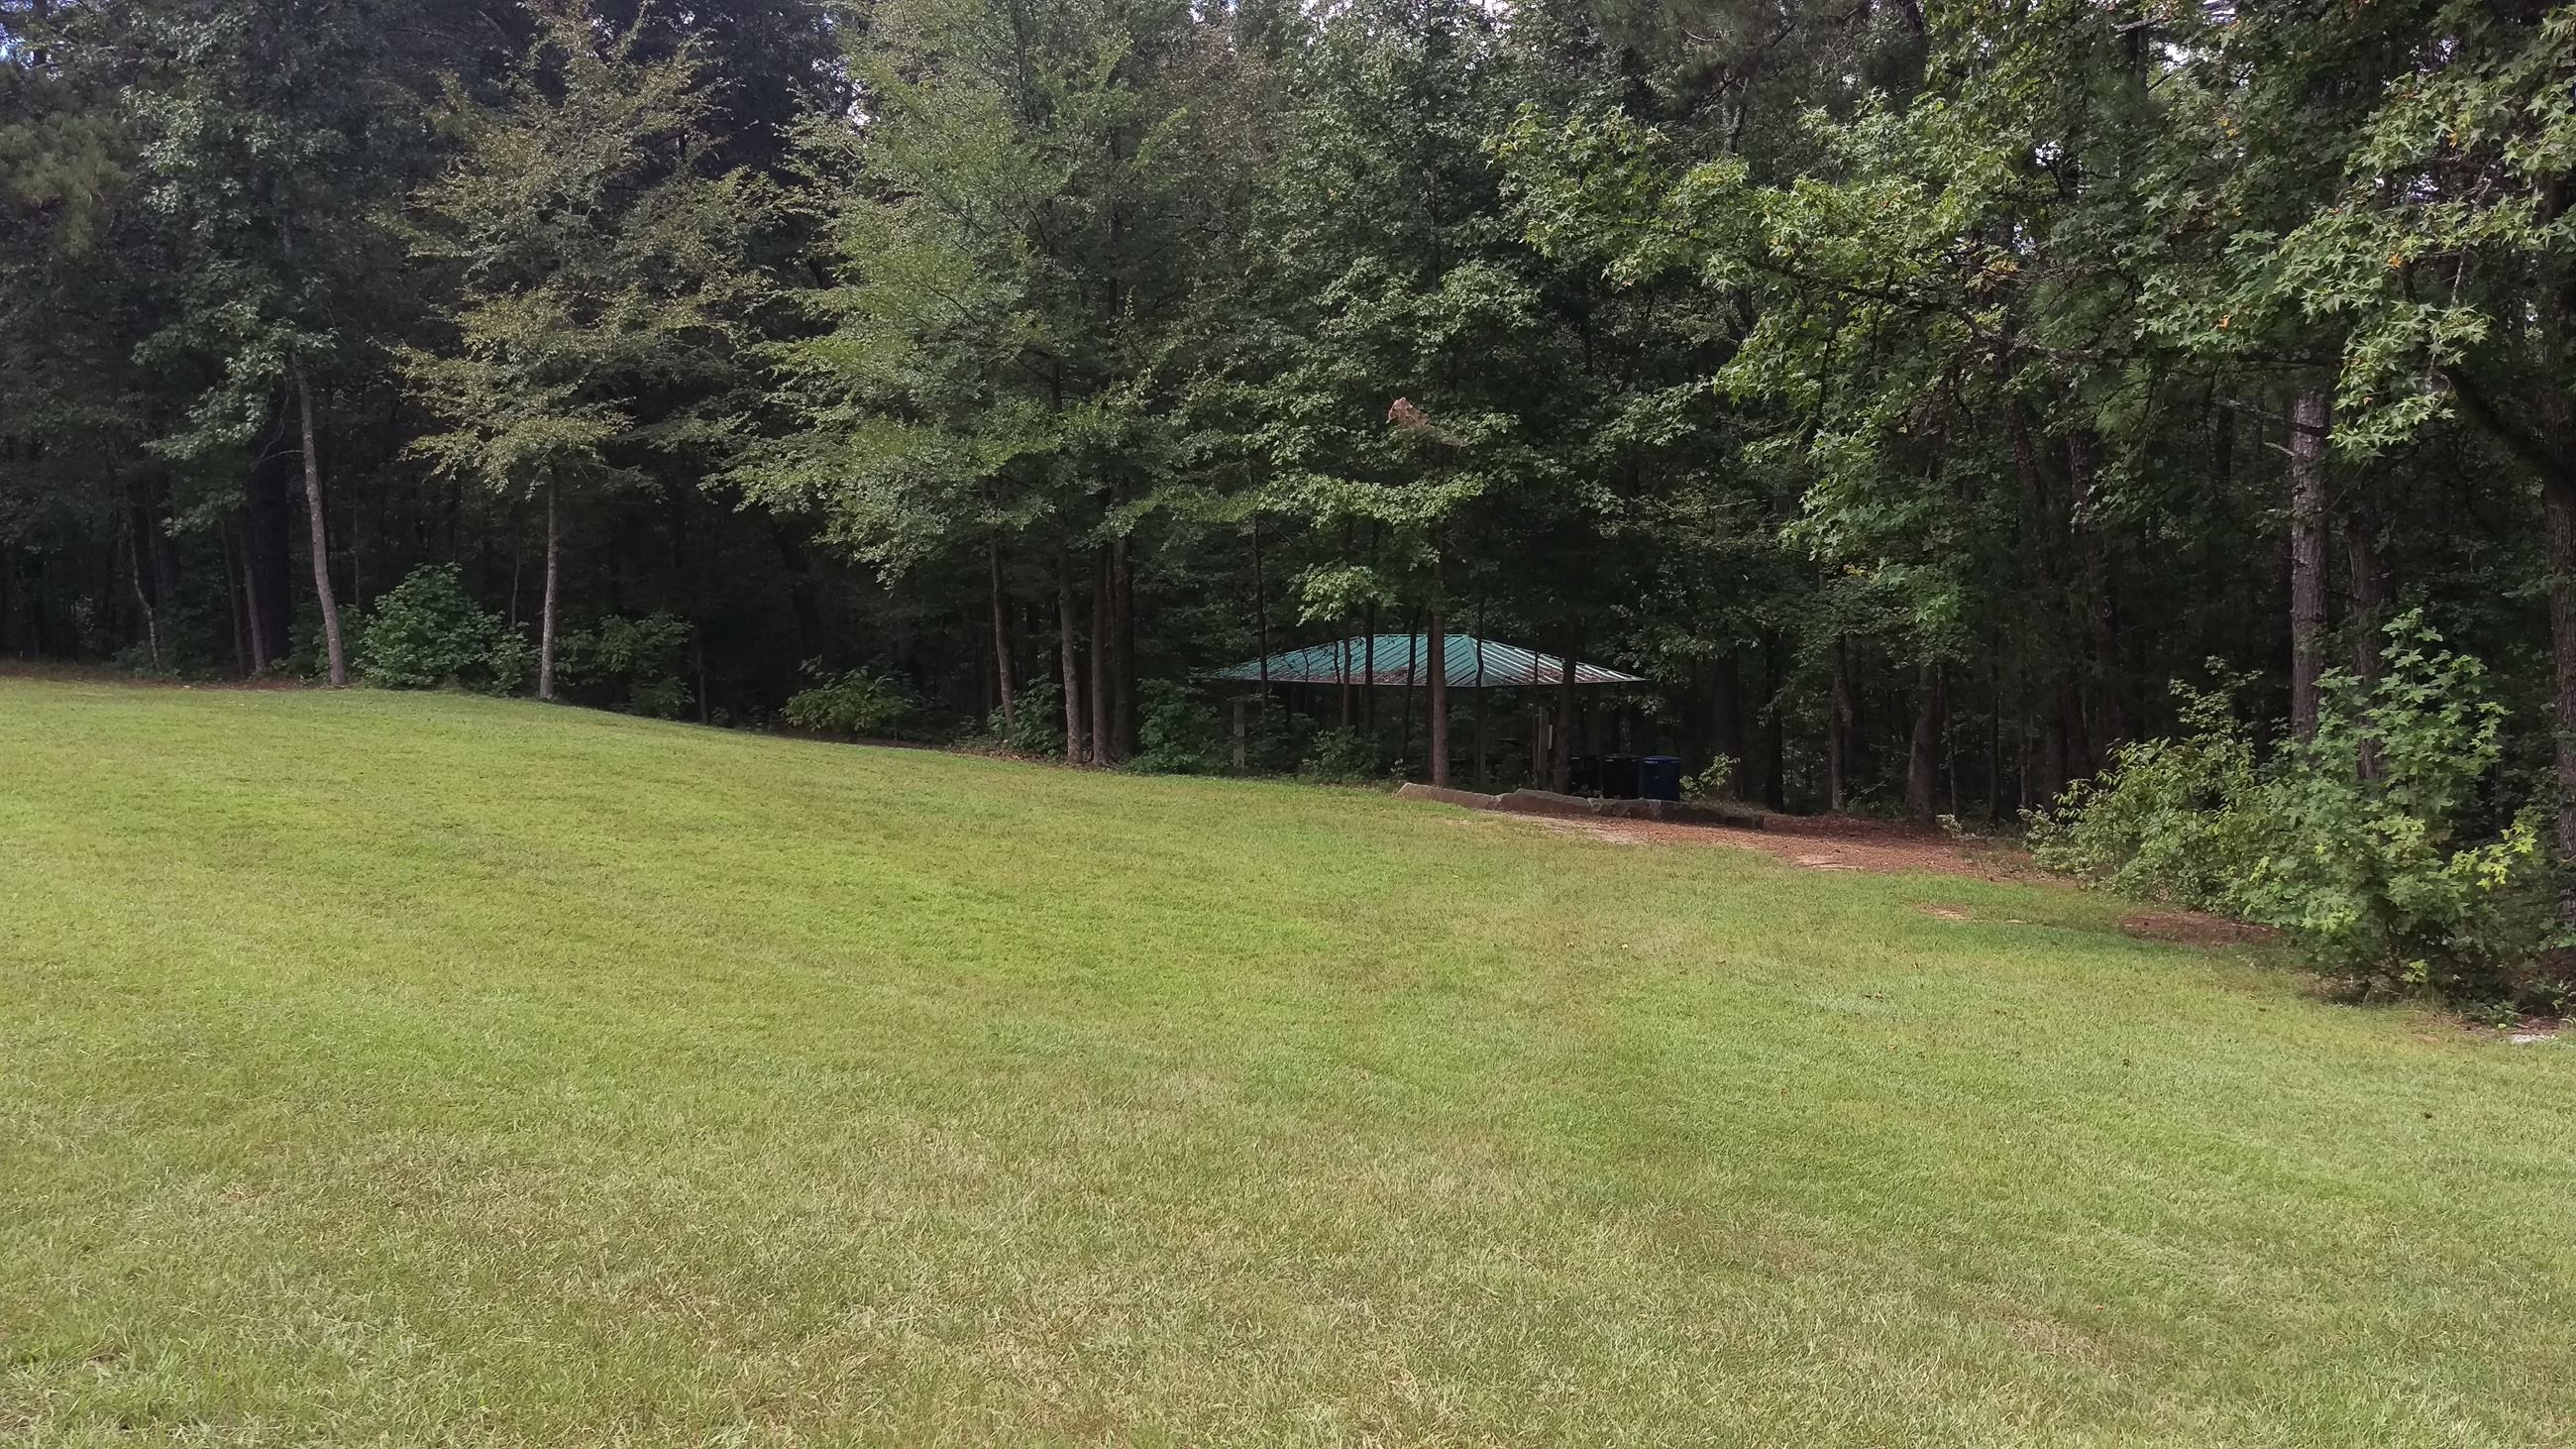 Photo of Picnic Shelter 5 and the adjacent lawn at Sandy Creek Park.